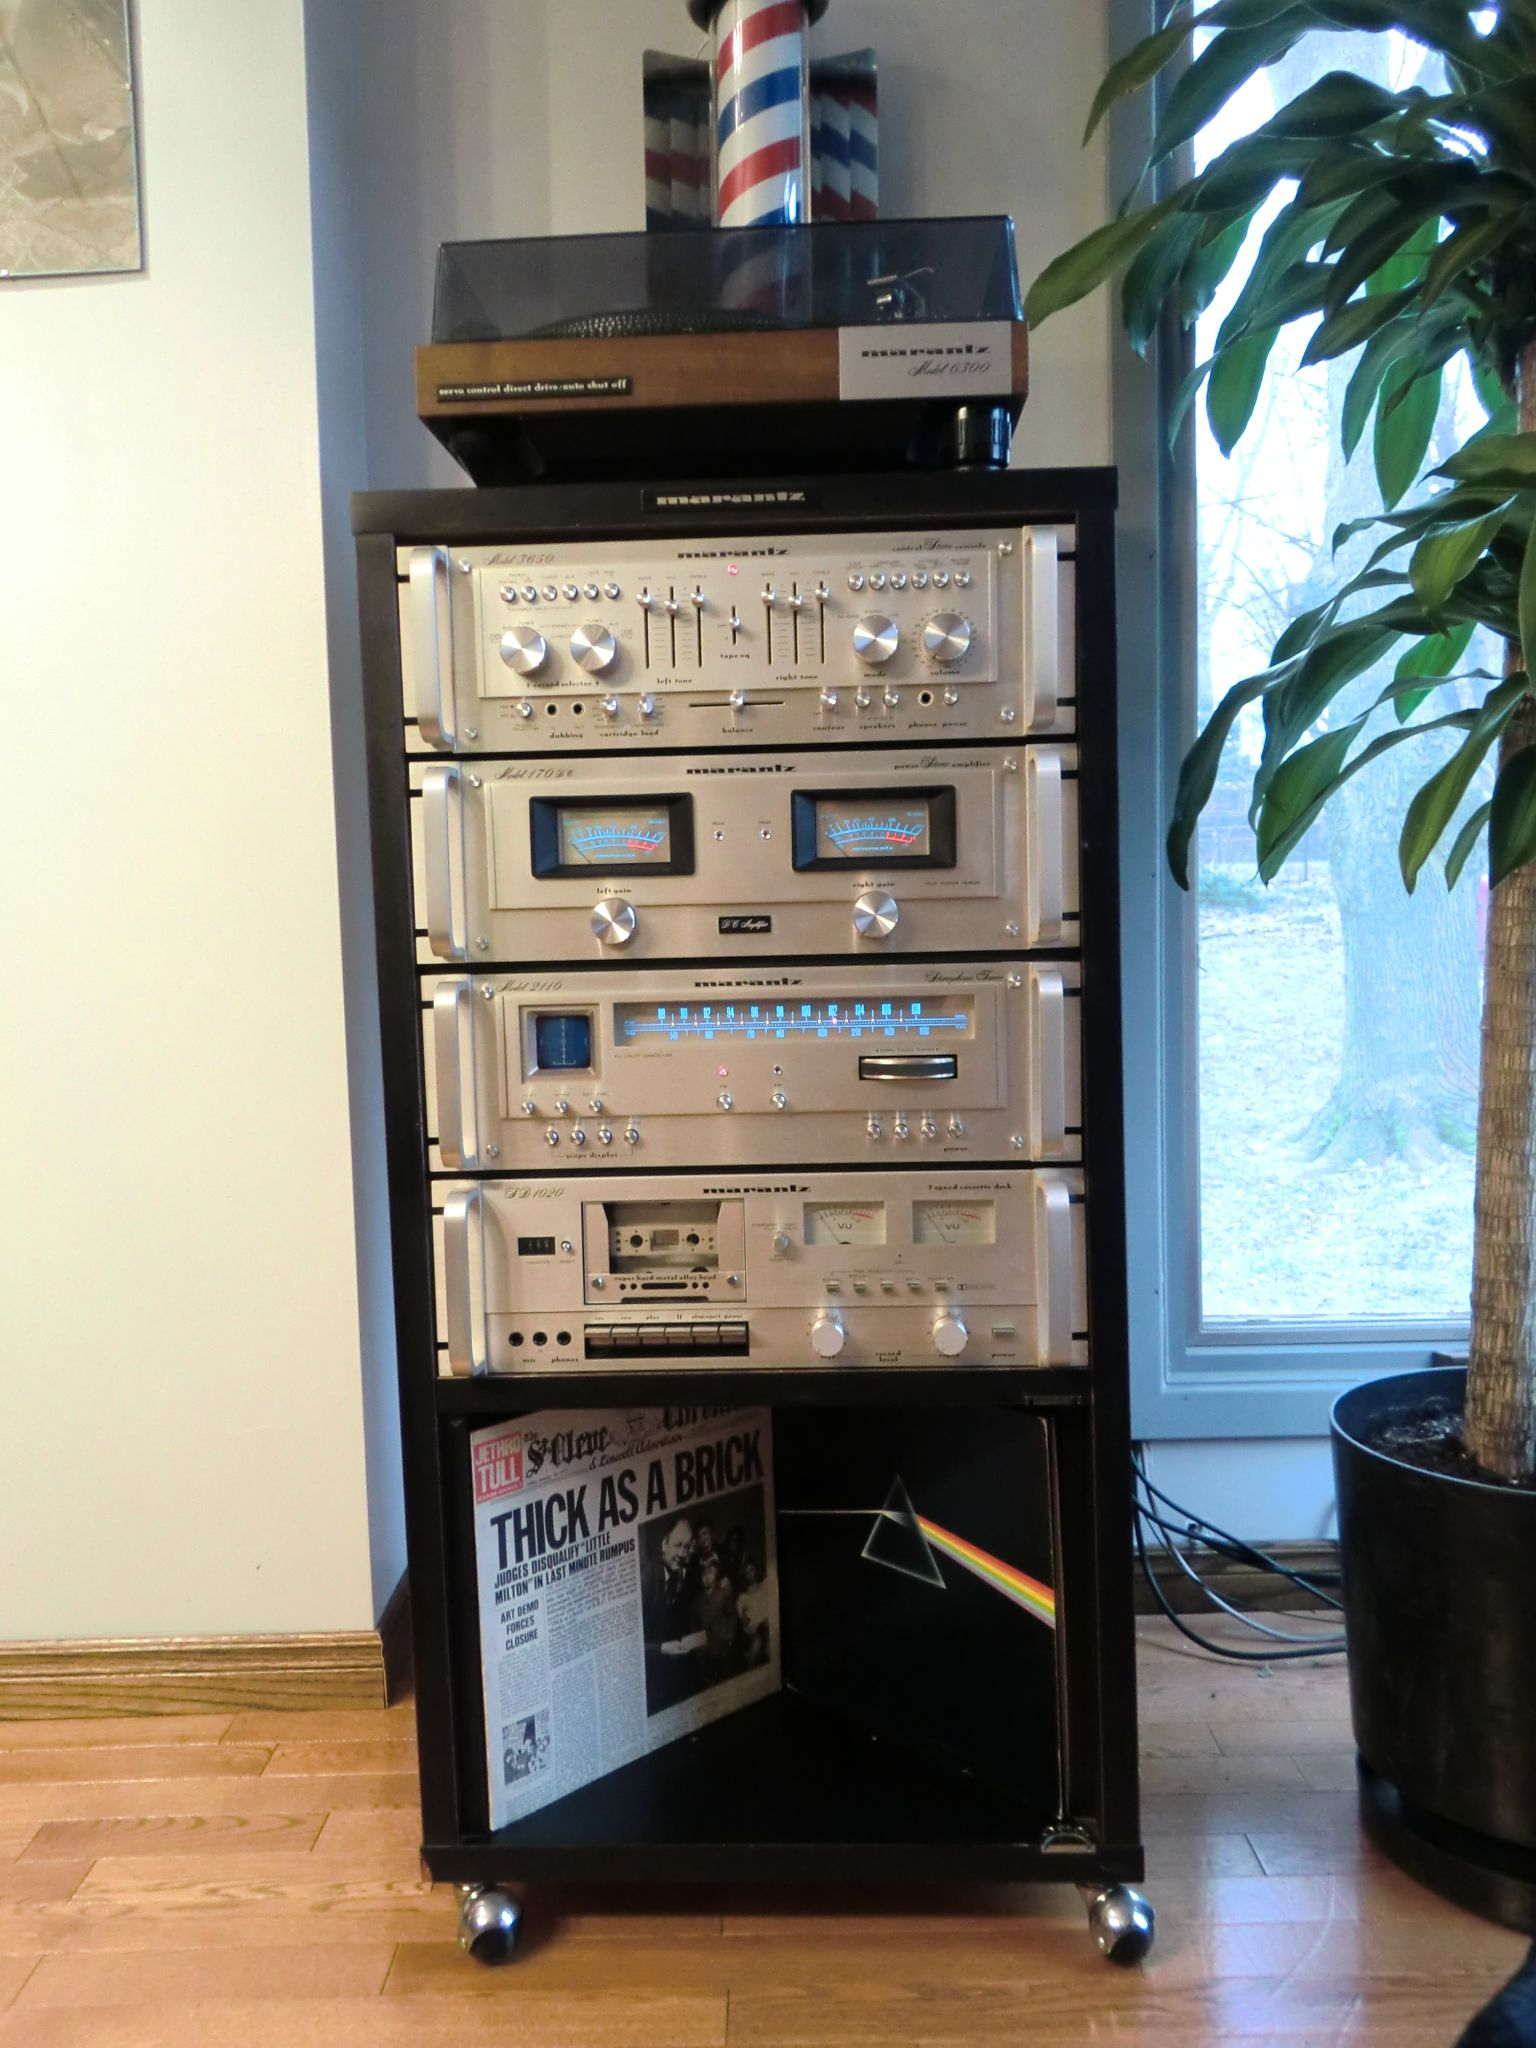 Looking for Vintage Marantz Audio Equipment - Racks, Amps